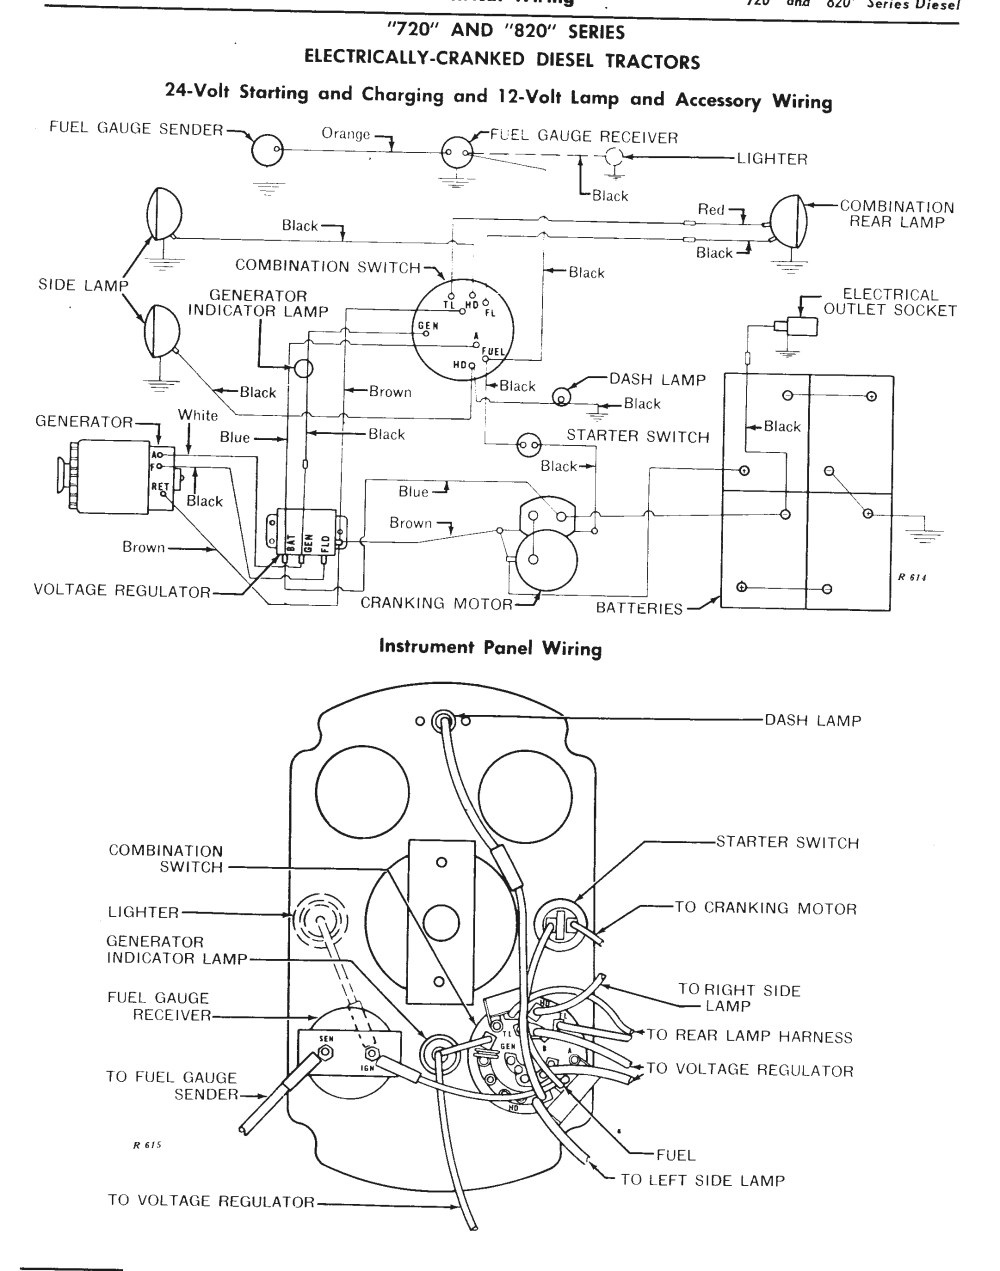 medium resolution of john deere positive ground wiring diagram wiring library john deere 350 wiring diagram john deere 6 volt wiring diagram